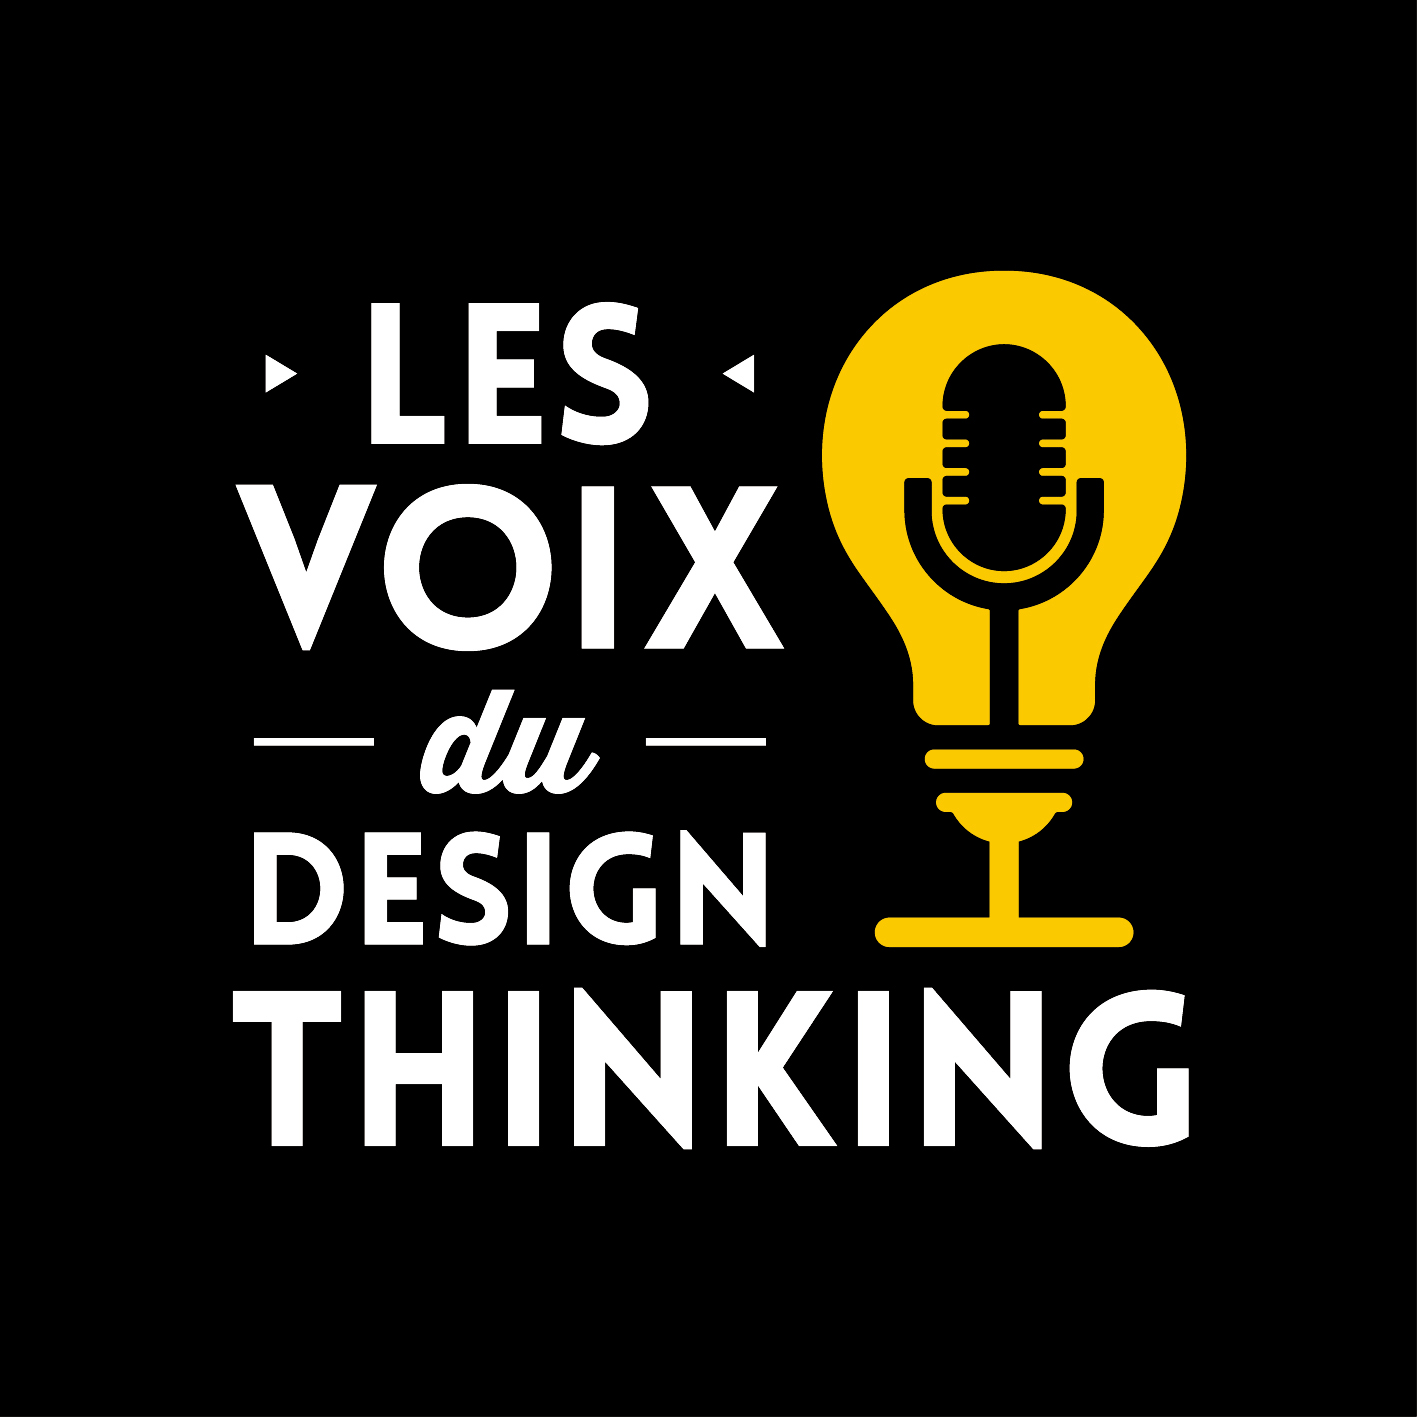 les-voix-du-design-thinking